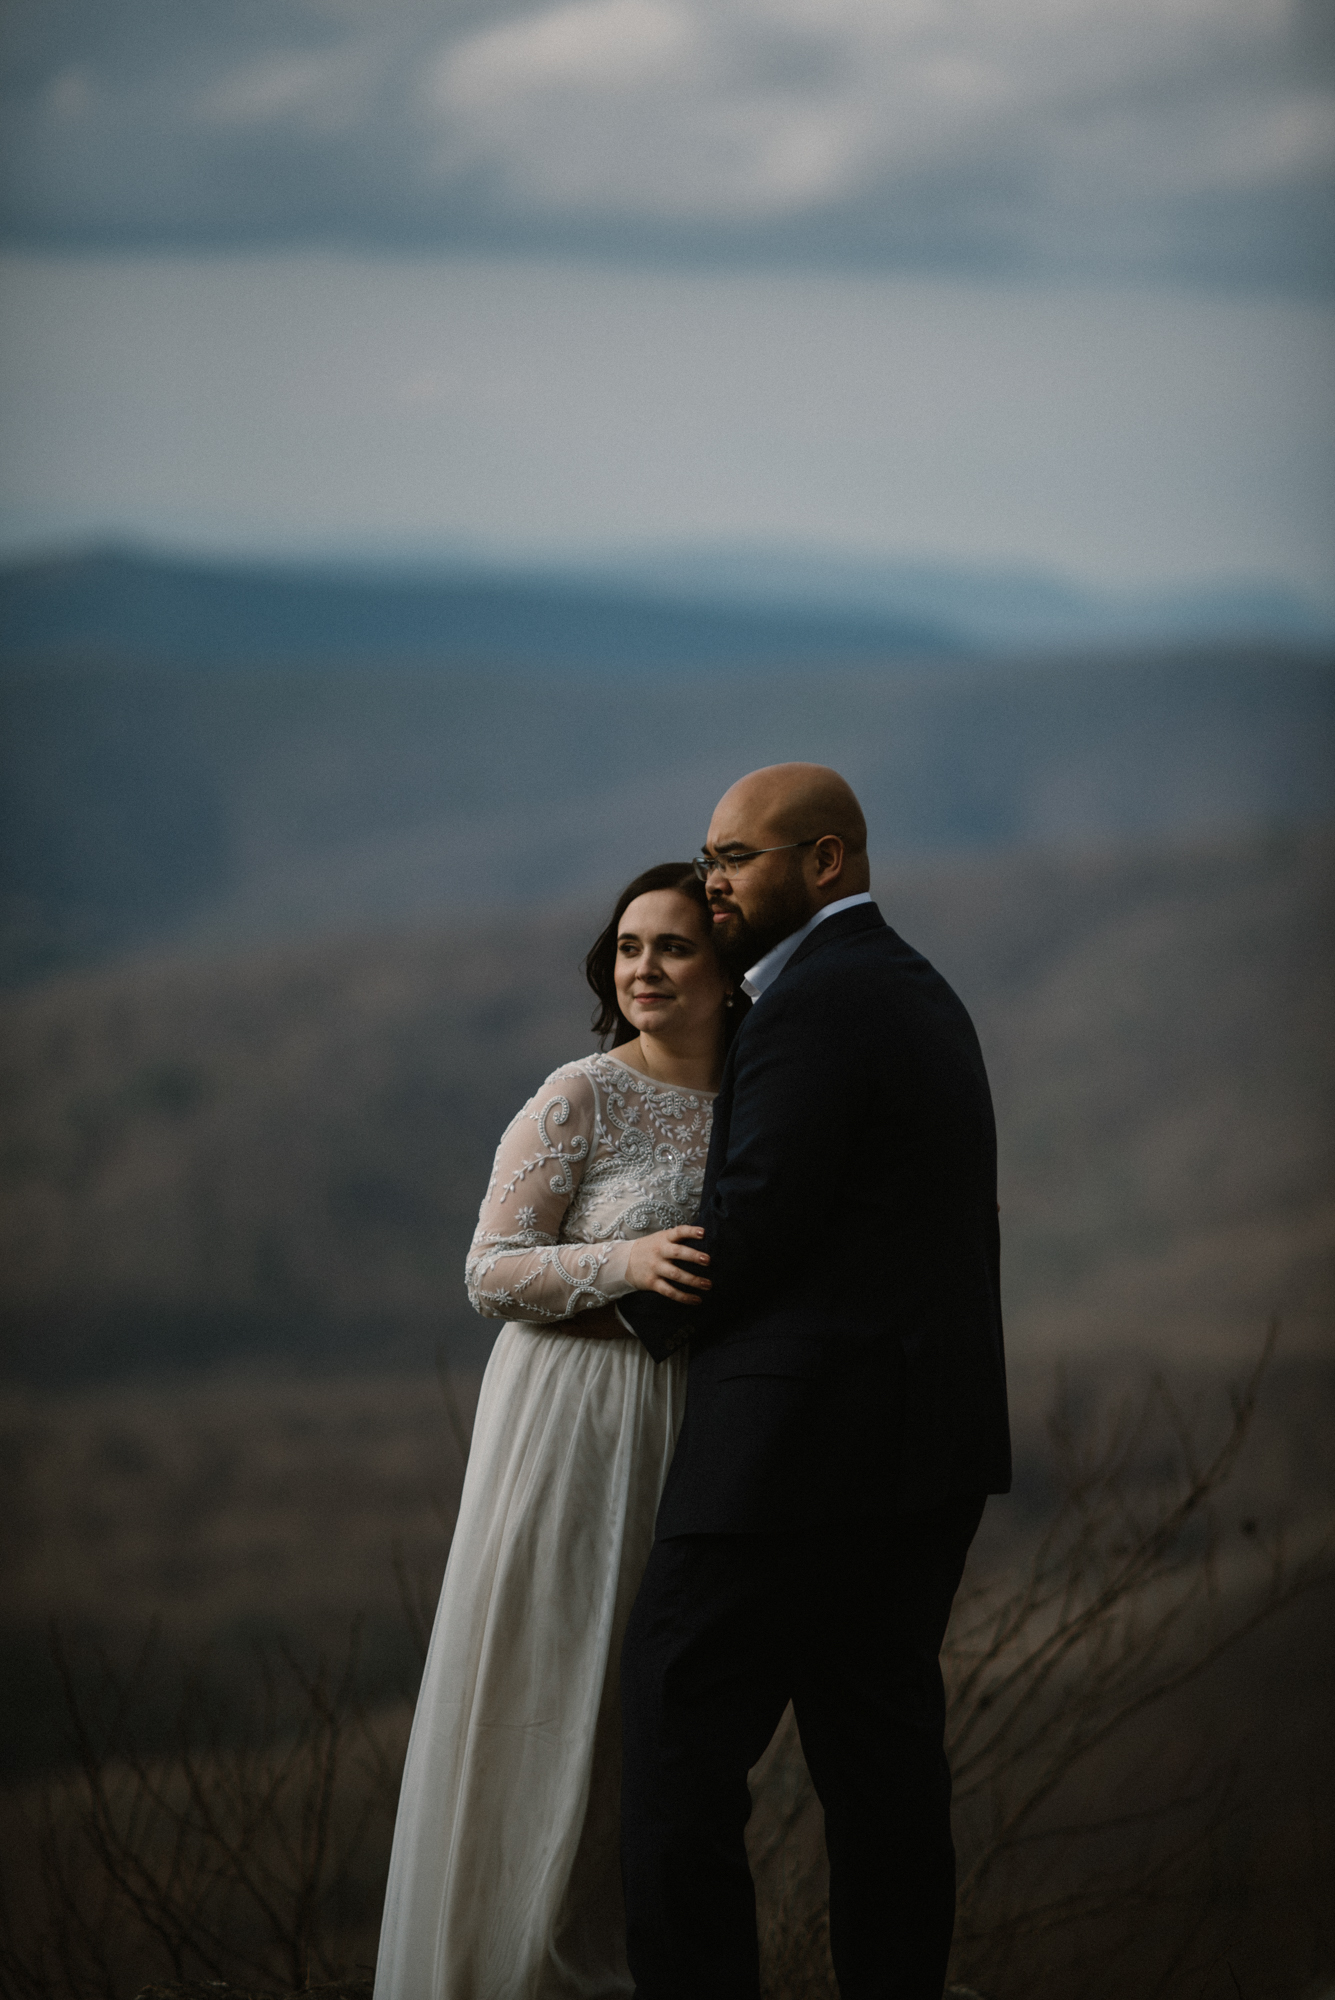 Emma and Jeddah - Intimate Luray Wedding - Shenandoah National Park Wedding - Adventure Elopement in Virginia - Shenandoah National Park Elopement_53.jpg